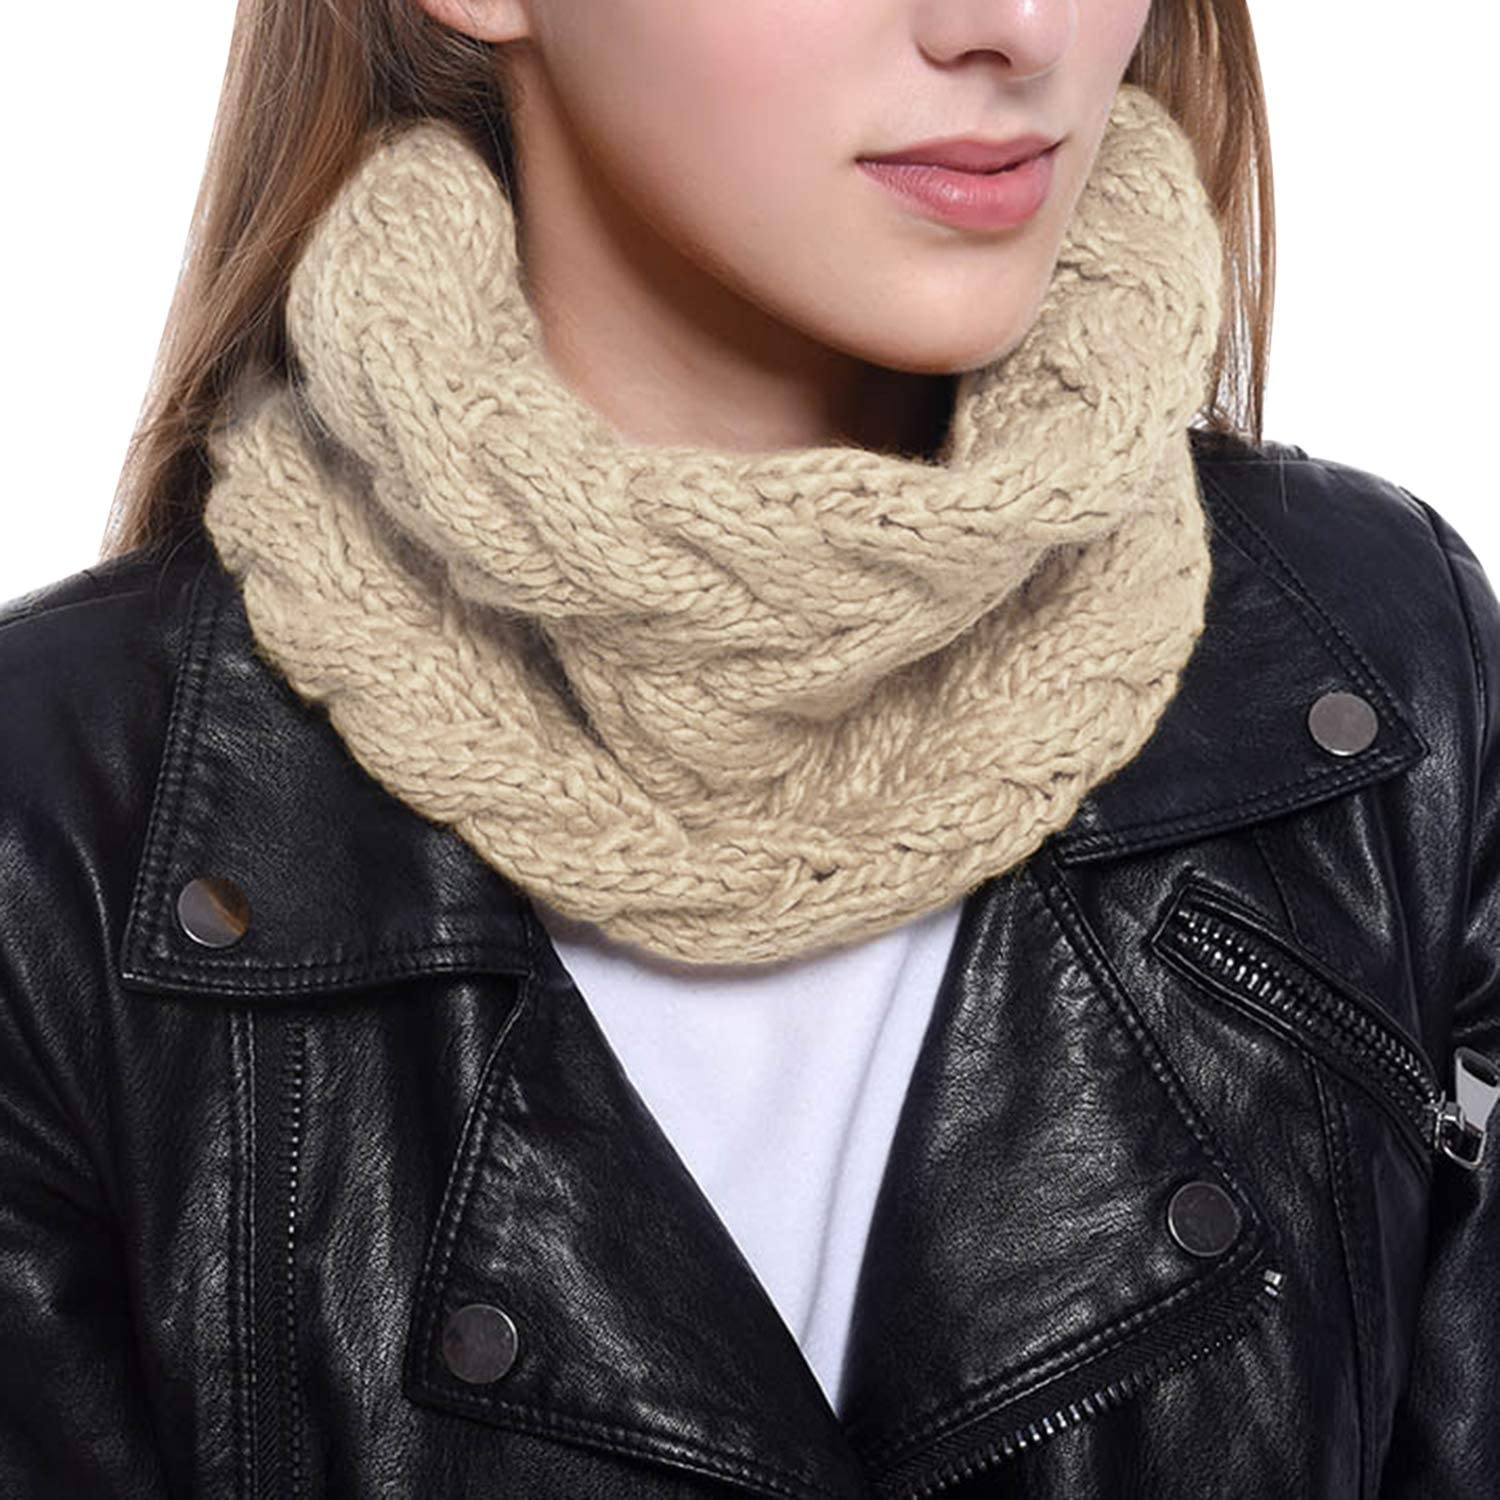 Olinase Knitted Neck Loop Scarves for Women Solid Color Comfy Autumn Winter Circle Neck Warmer